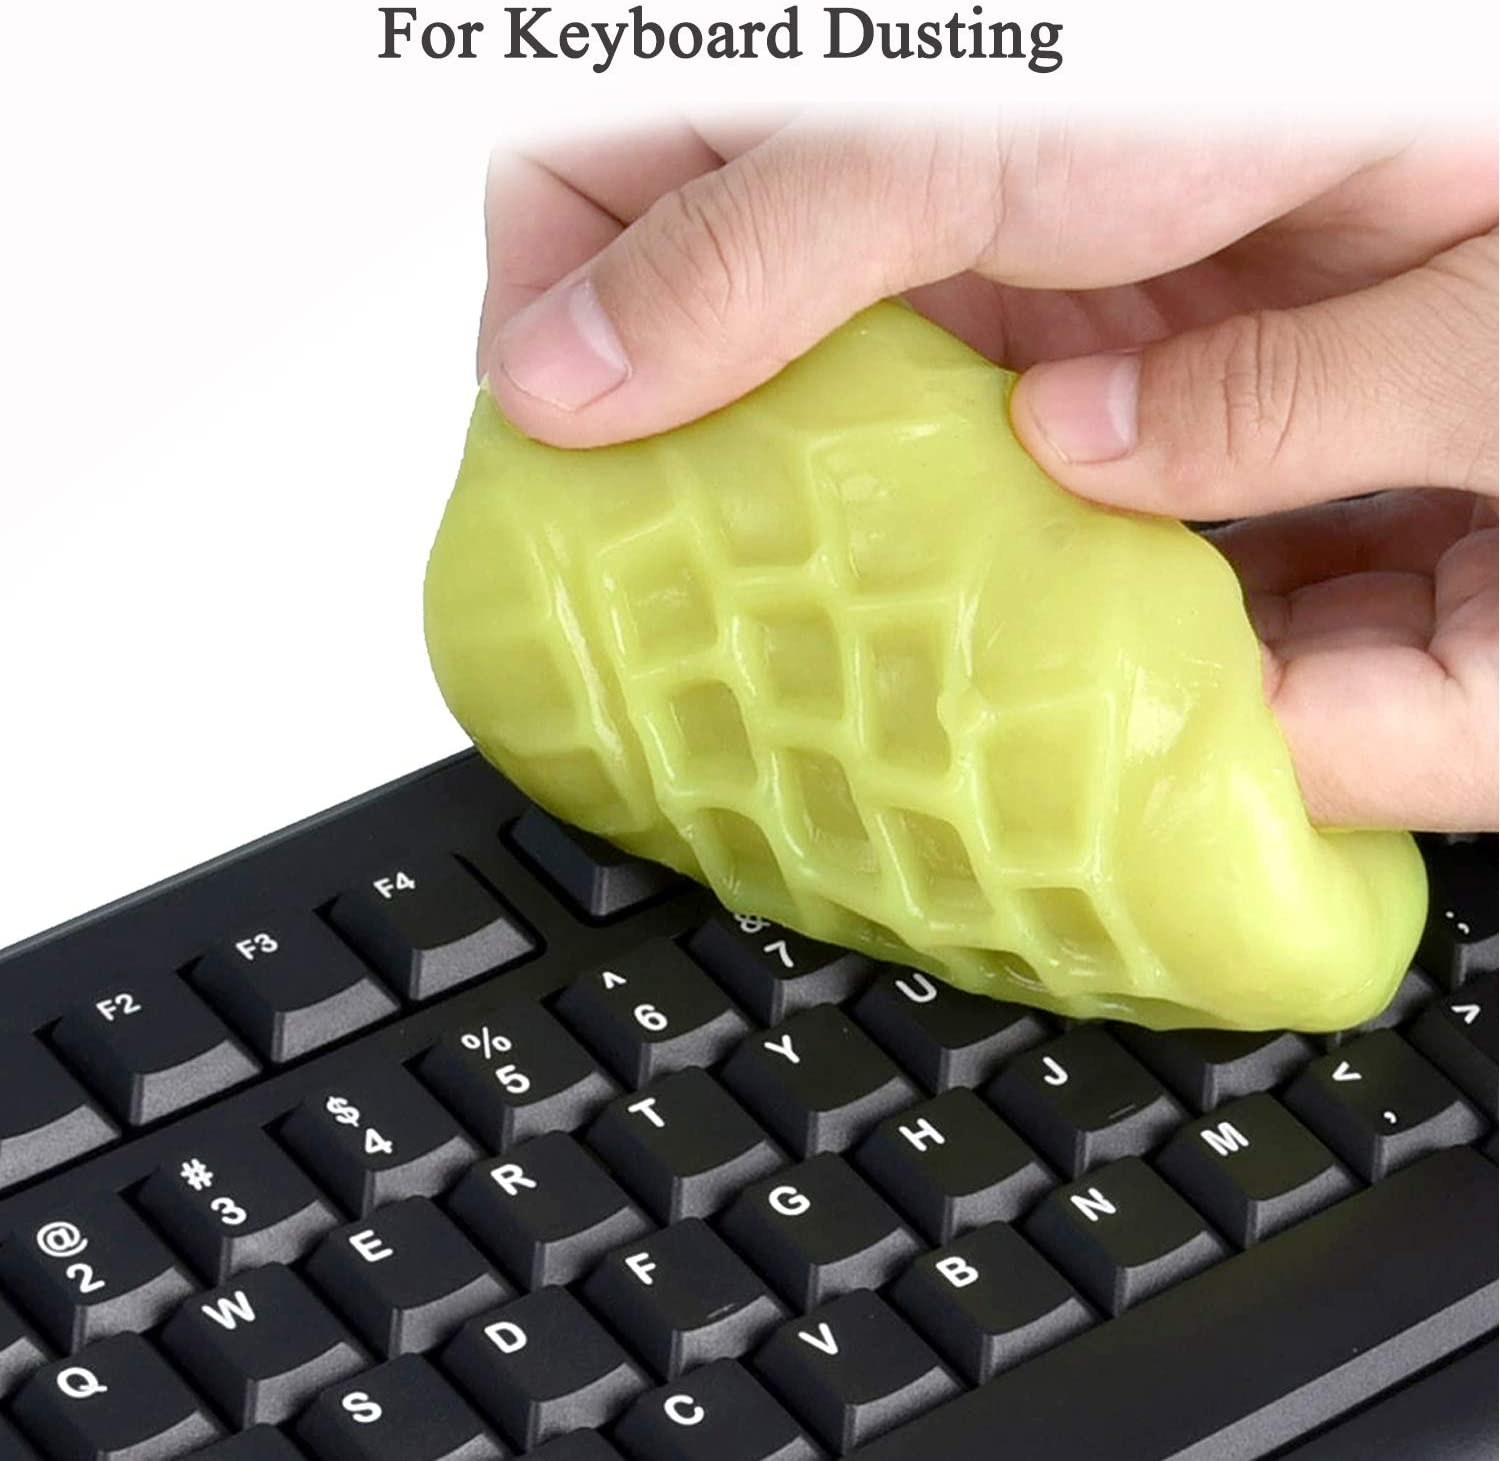 person using the cleaning goo to get in between keyboard keys